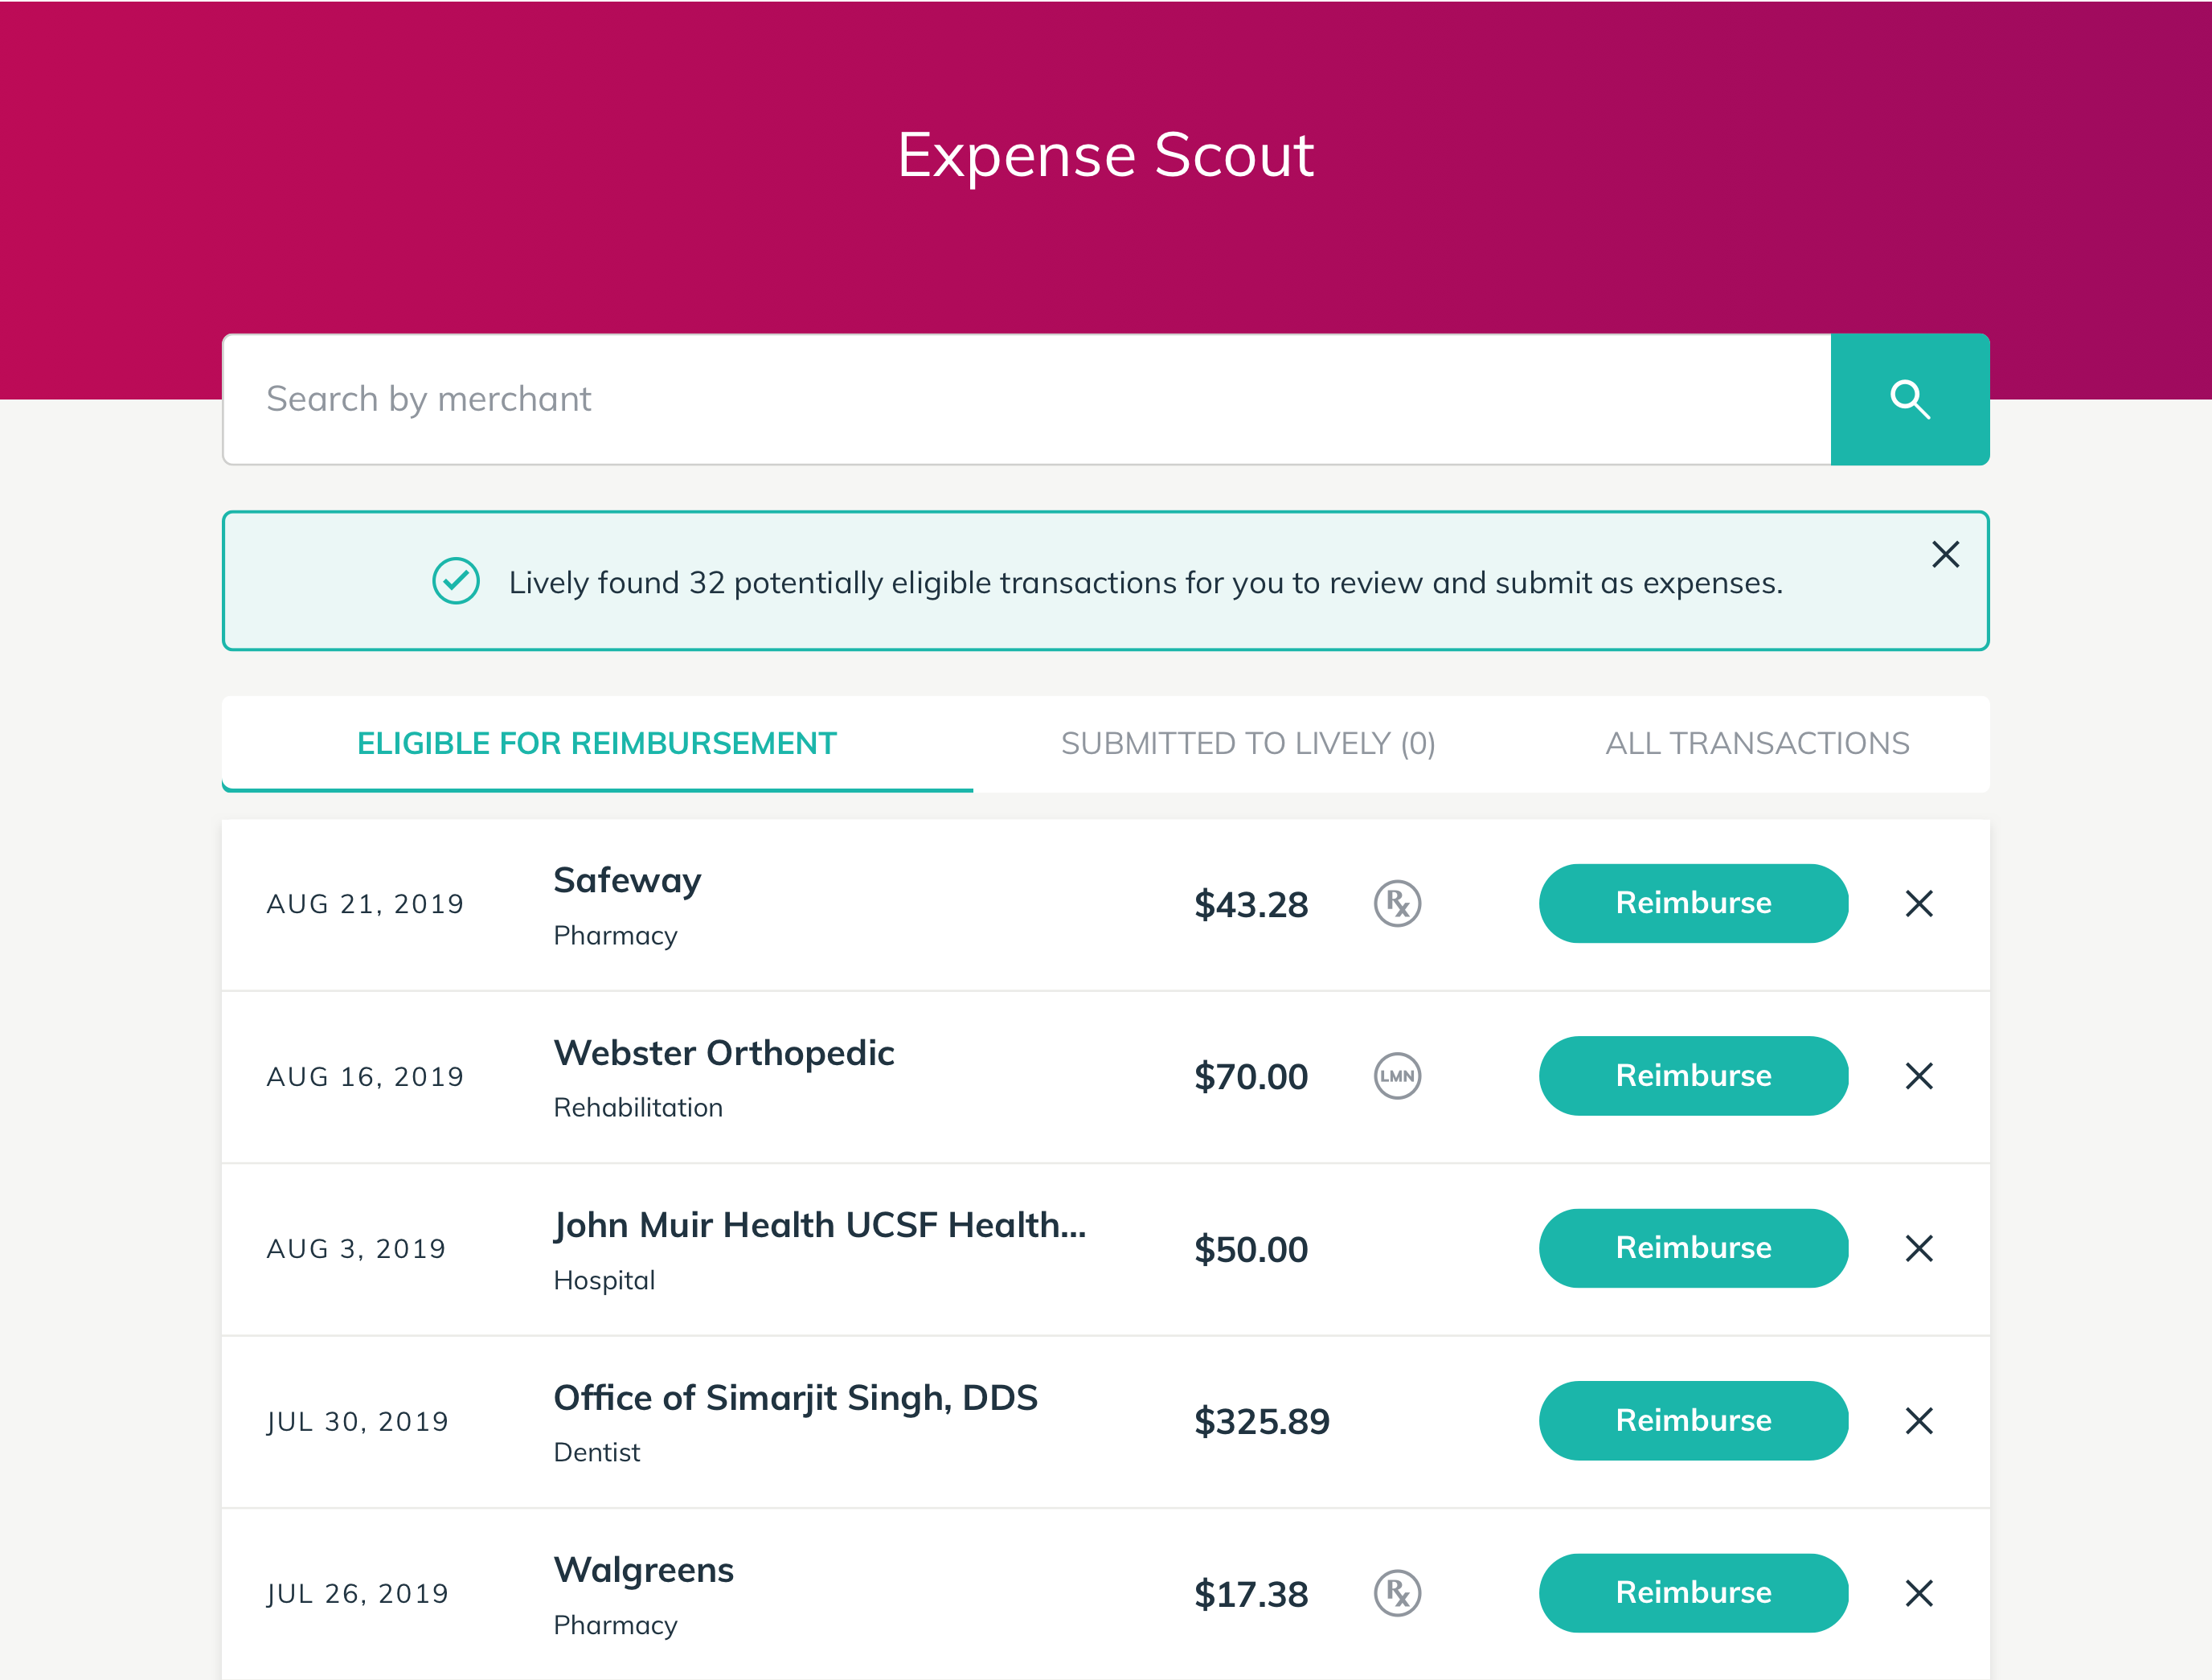 Expense Scout